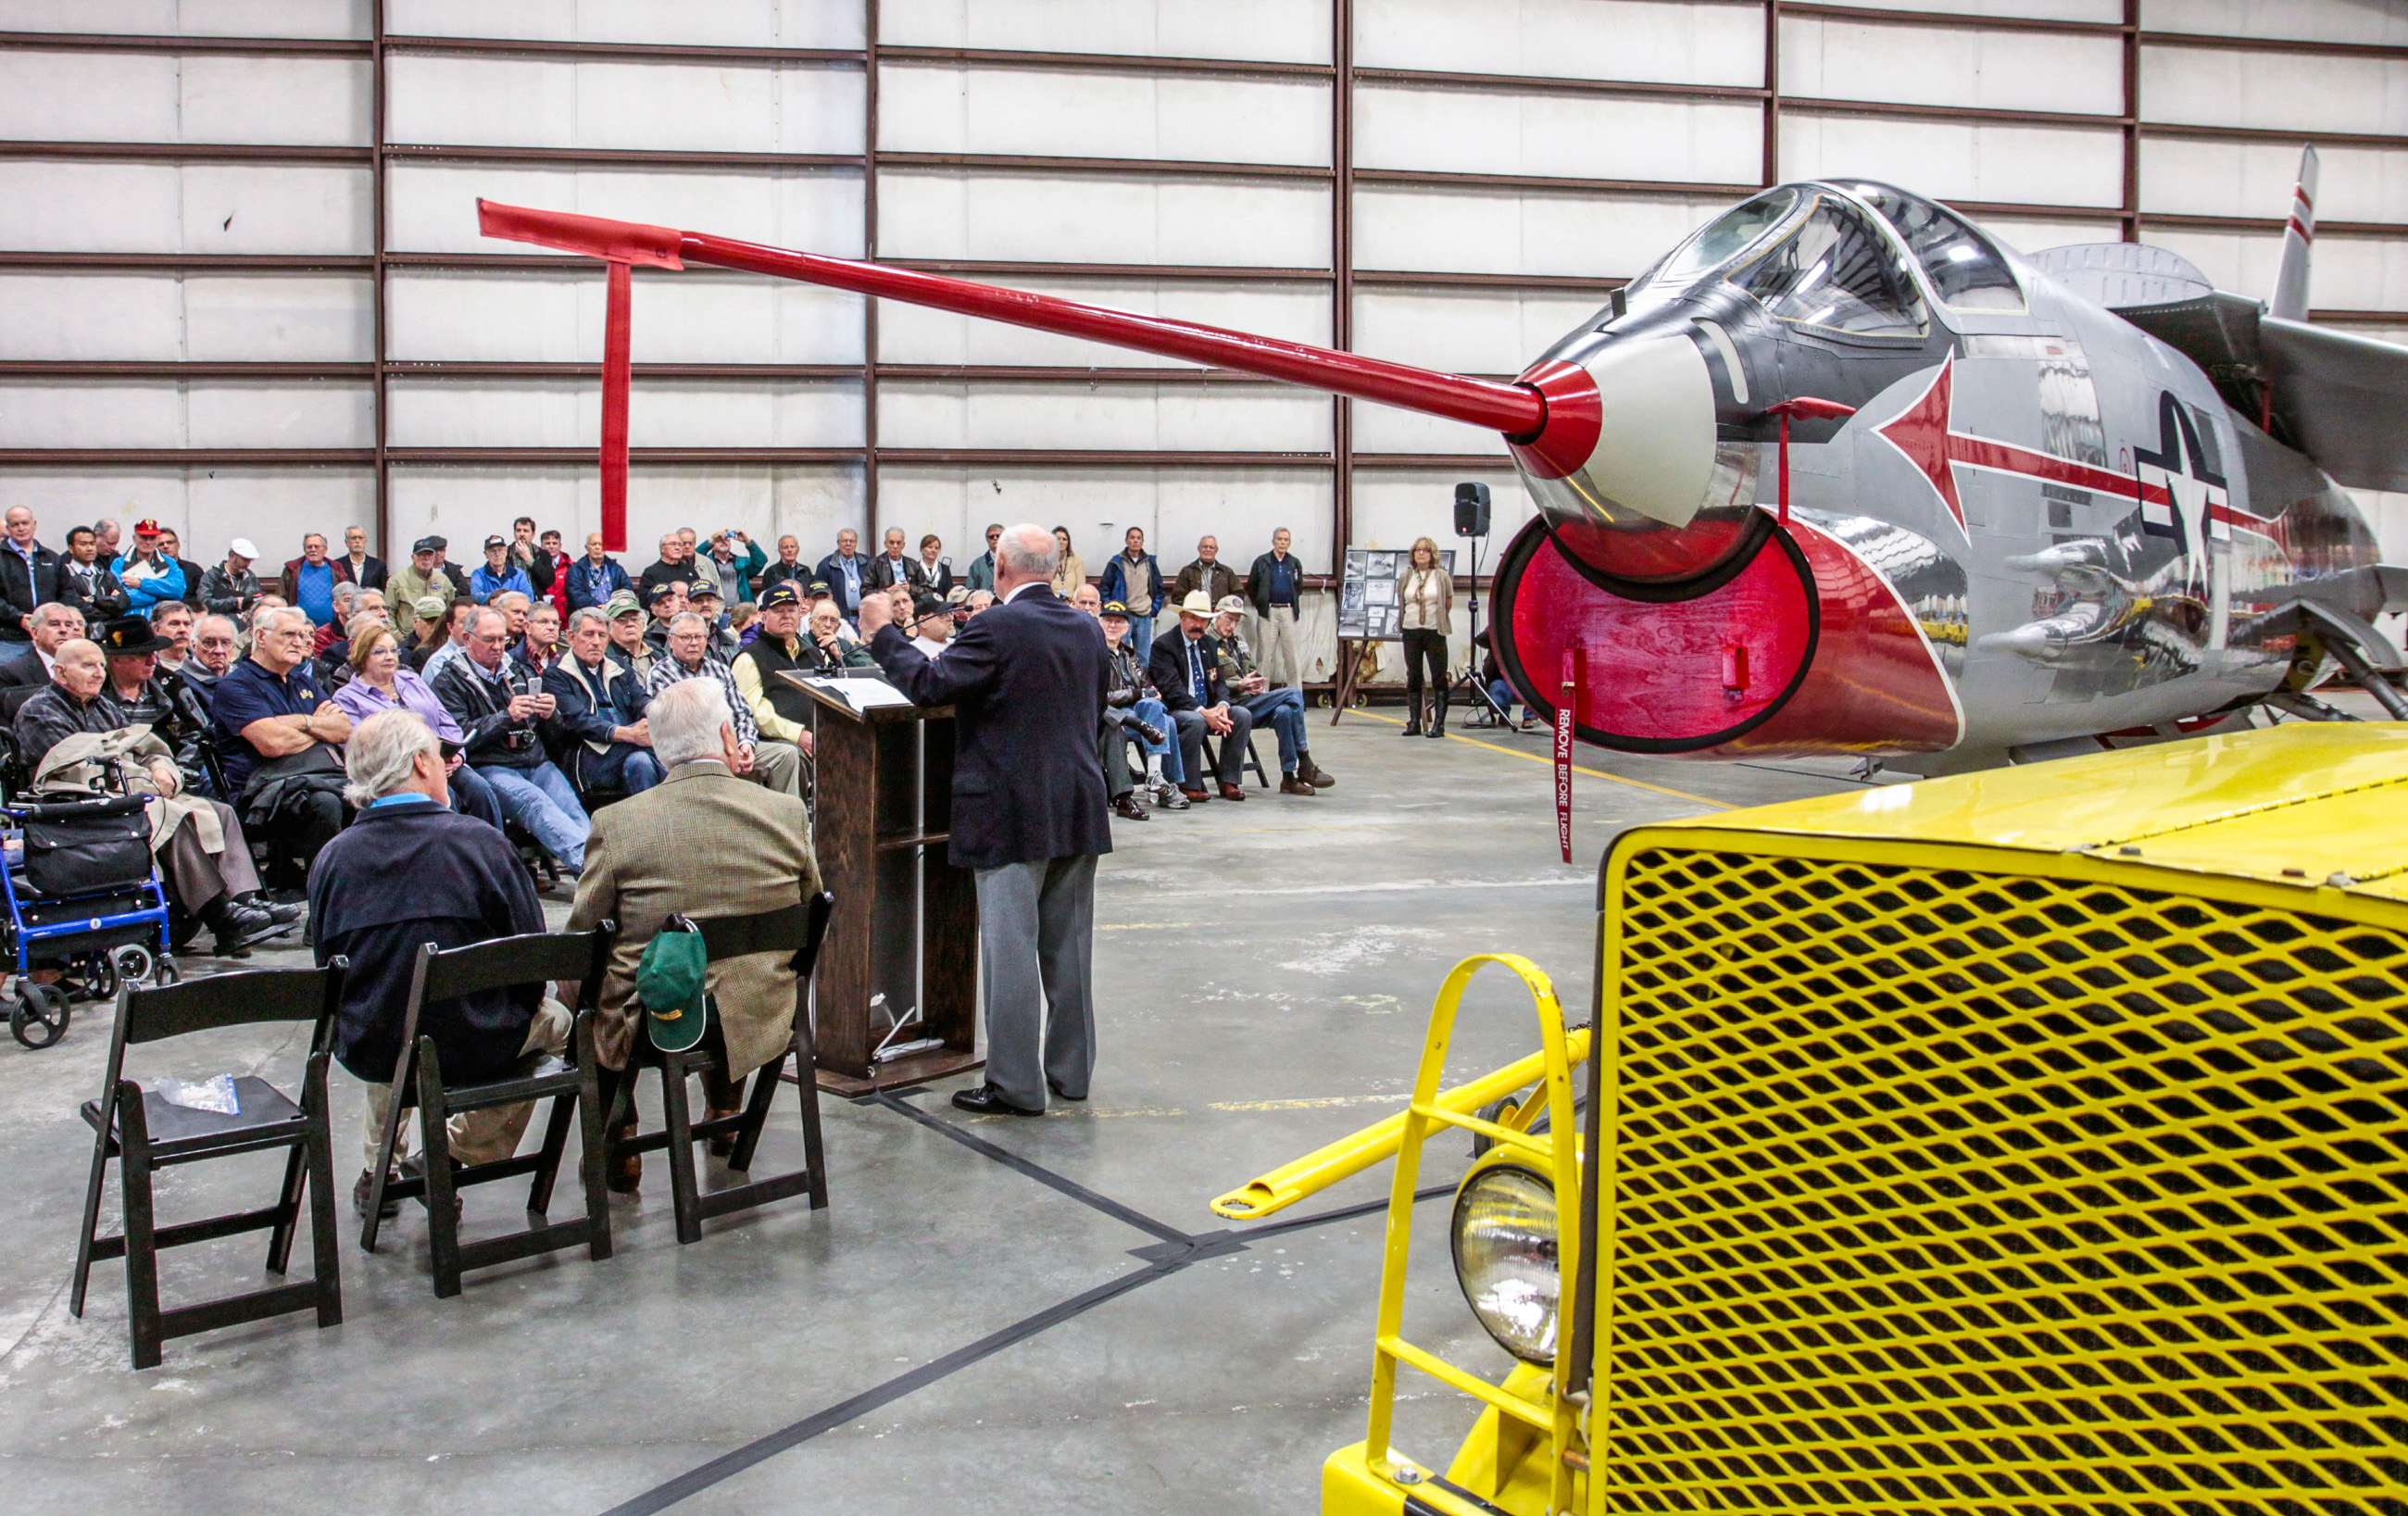 The unveiling ceremony underway for the Museum of Flight's Chance Vought XF8U-1 Crusader prototype at their restoration center in Everett, Washington. (photo by Ted Huetter/Museum of Flight)